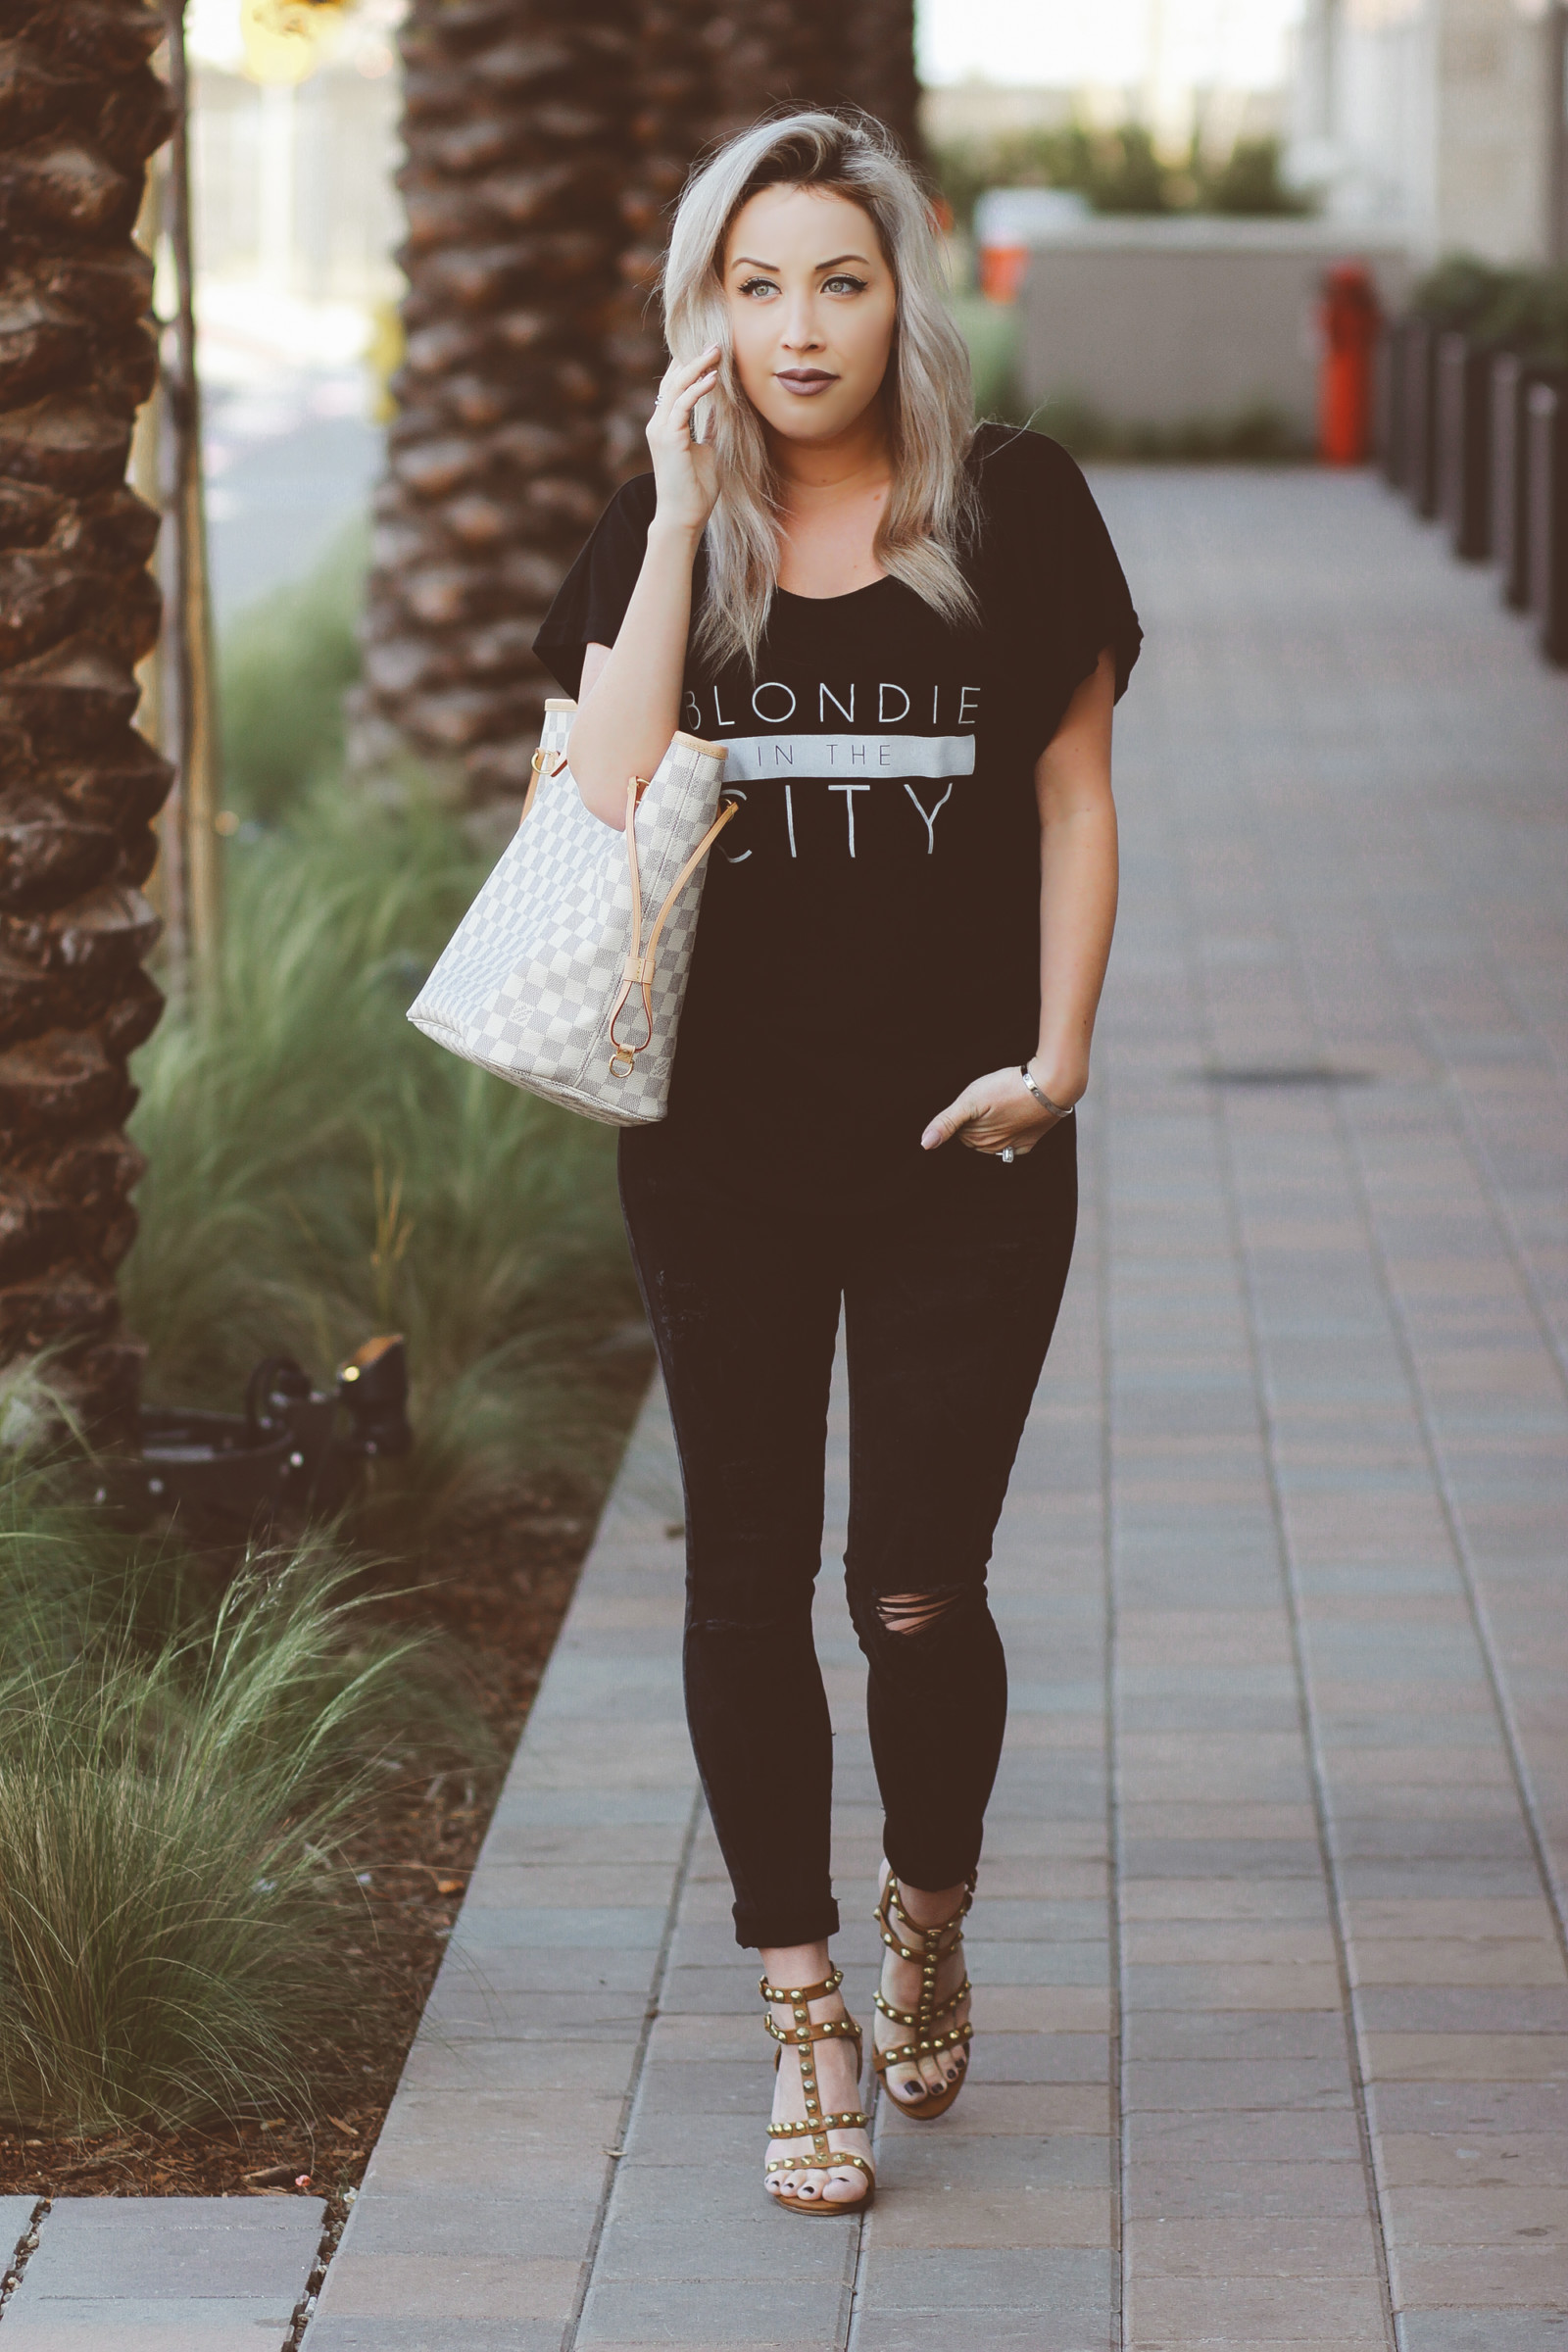 Blondie in the City | The Blondie in the City Collection